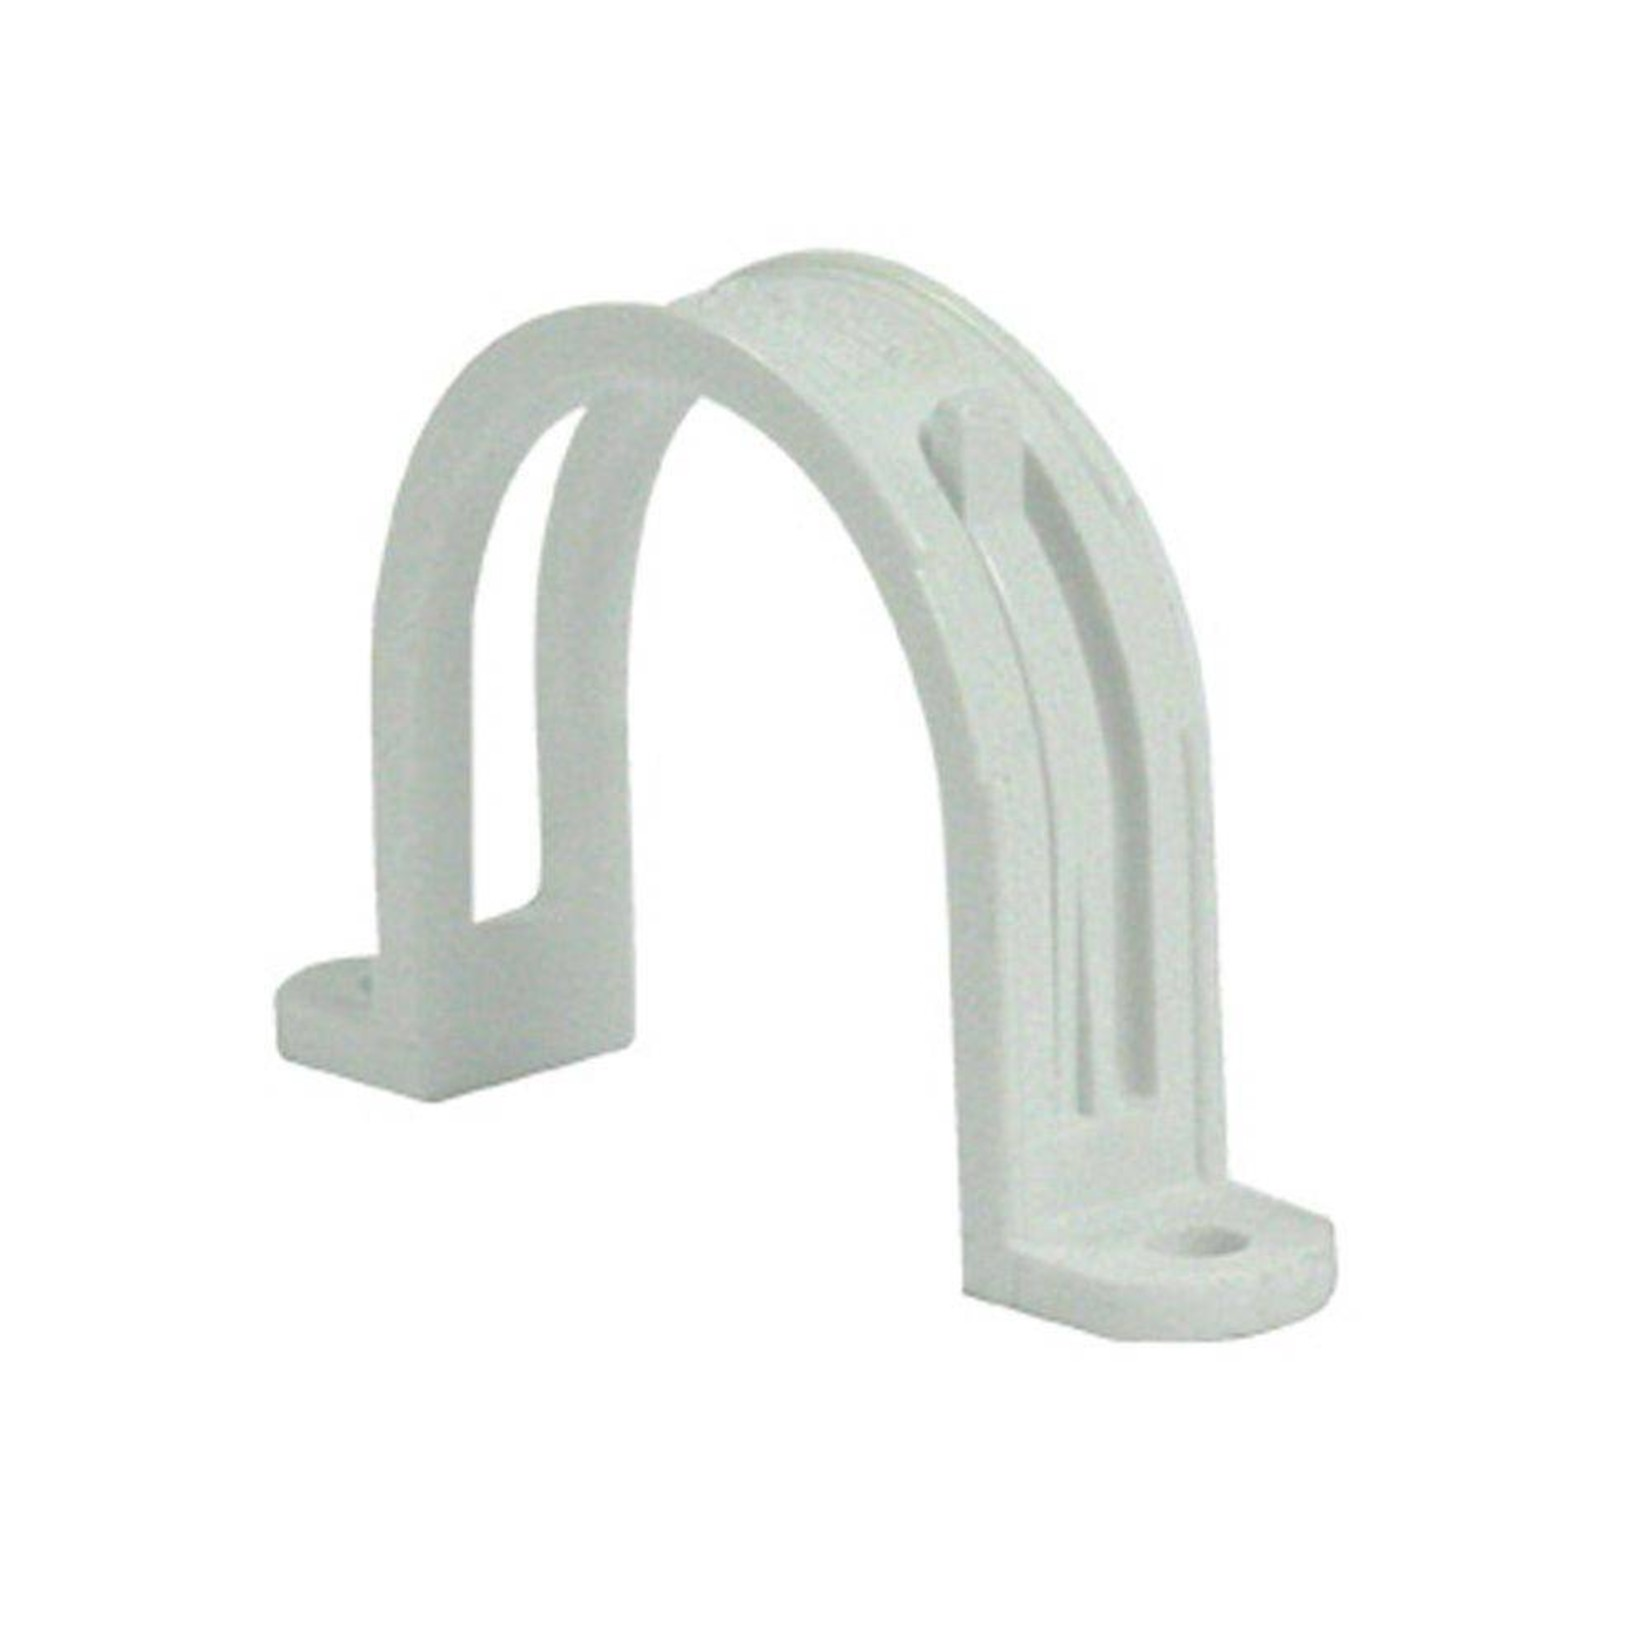 BEAM CVS Pipe Hanger Clamp - (Box of 500)